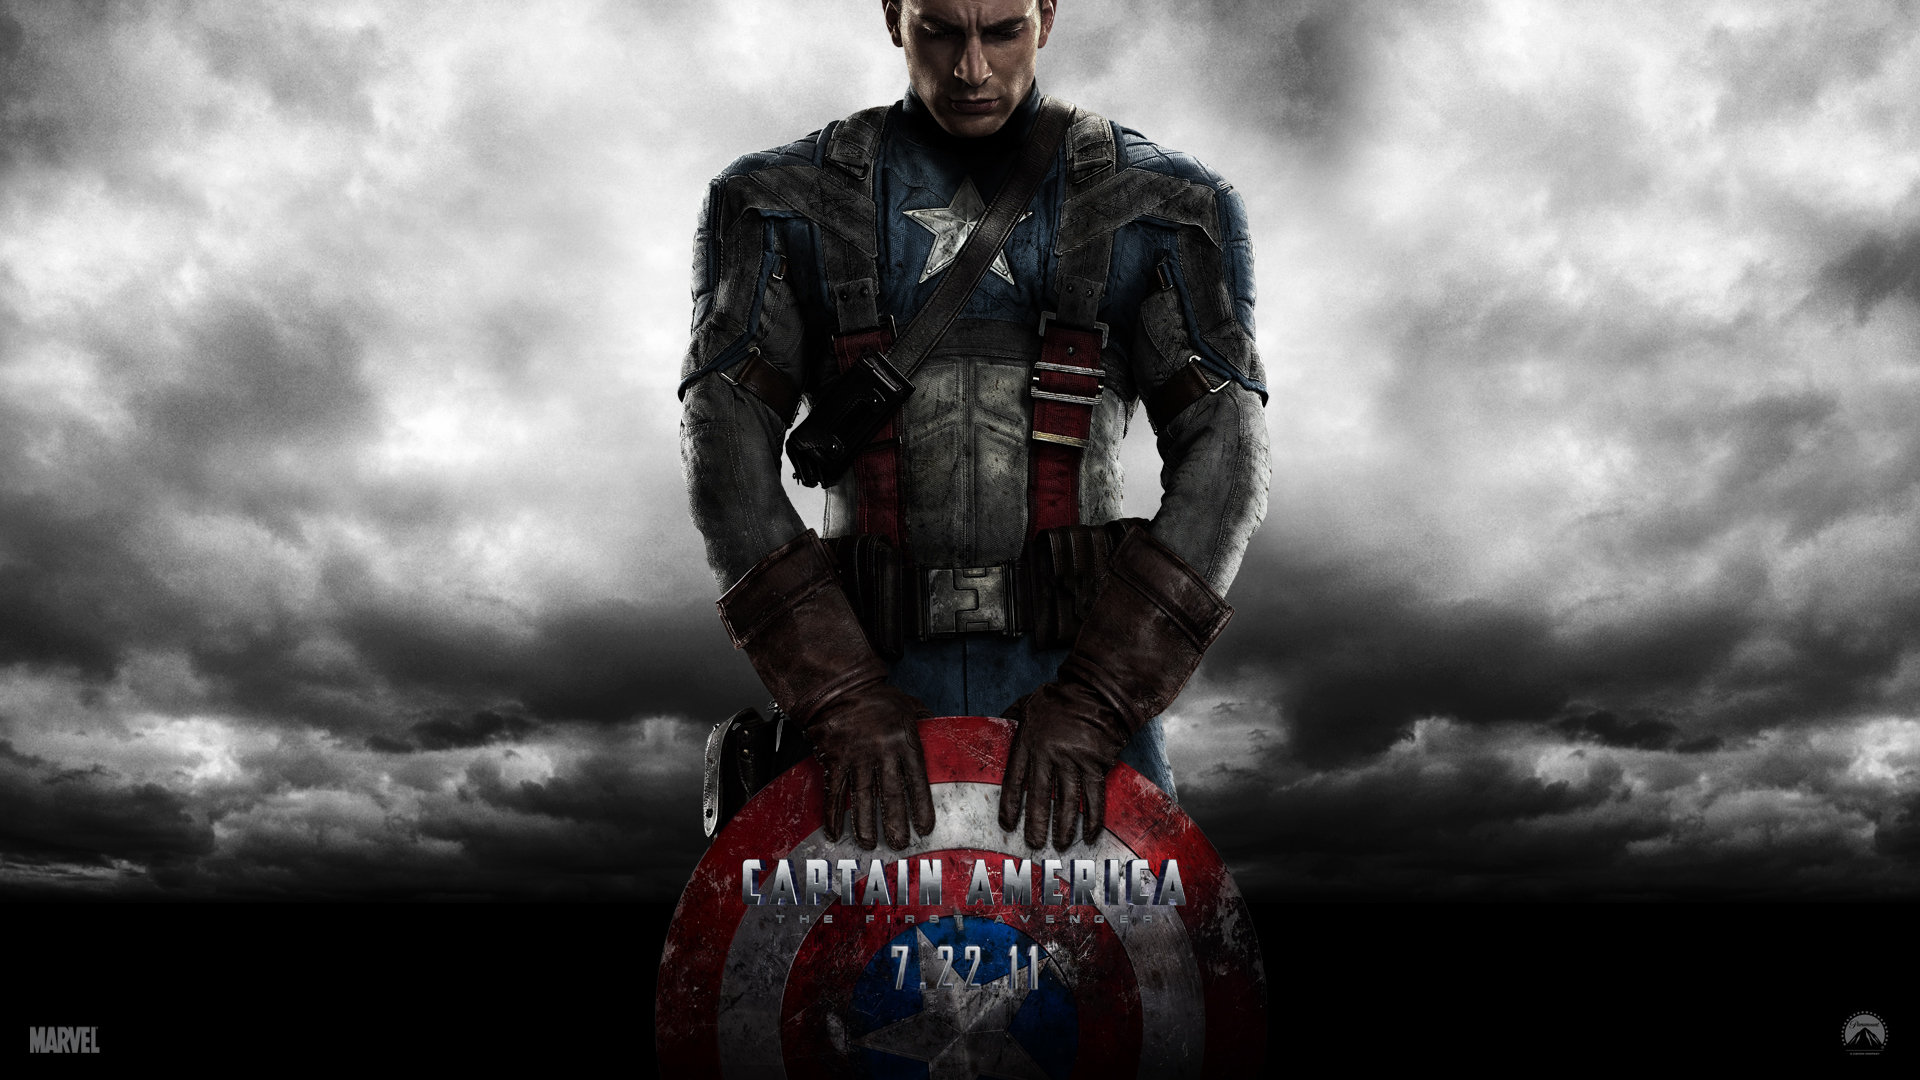 Chris Evans Captain America Wallpaper